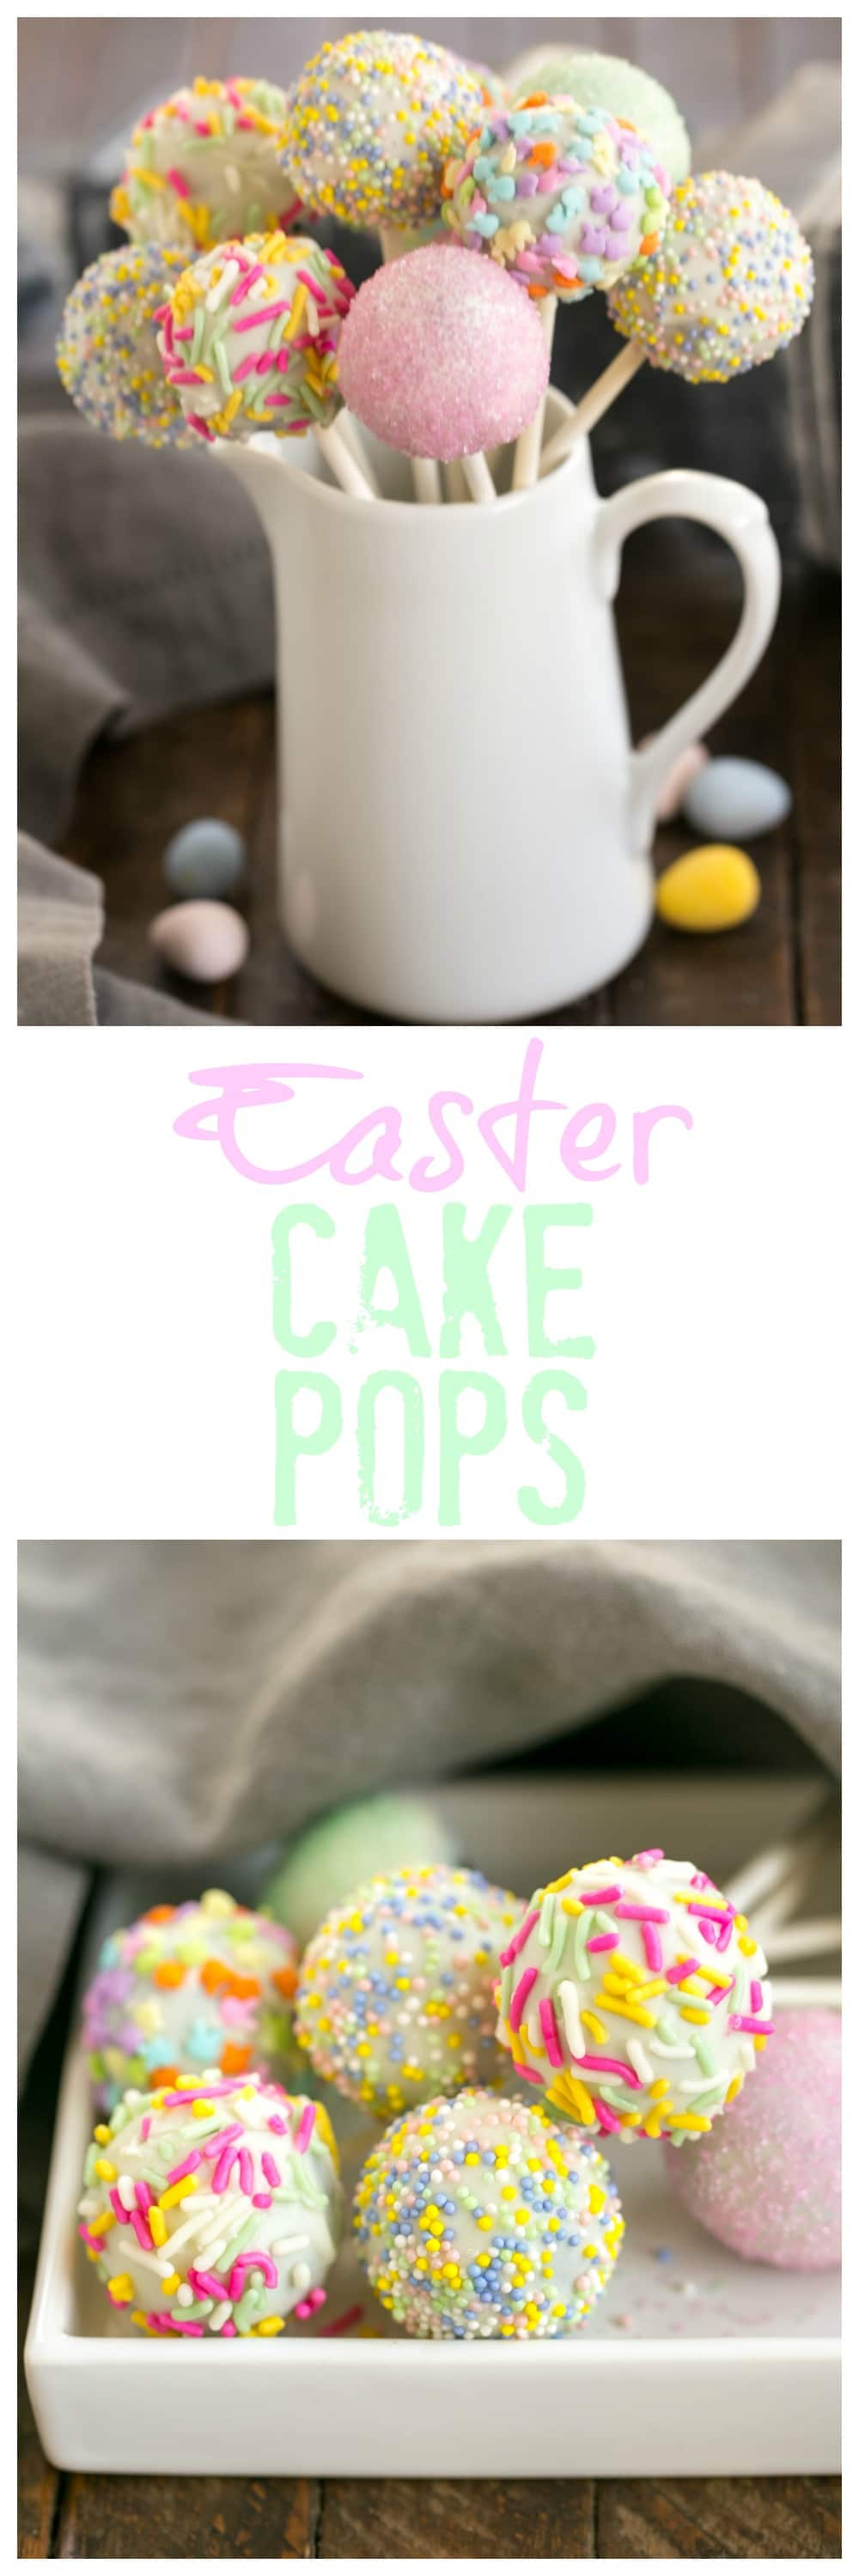 Easter Cake Pops - a festive holiday treat made with just four ingredients #cakepops #easter #easterdesserts